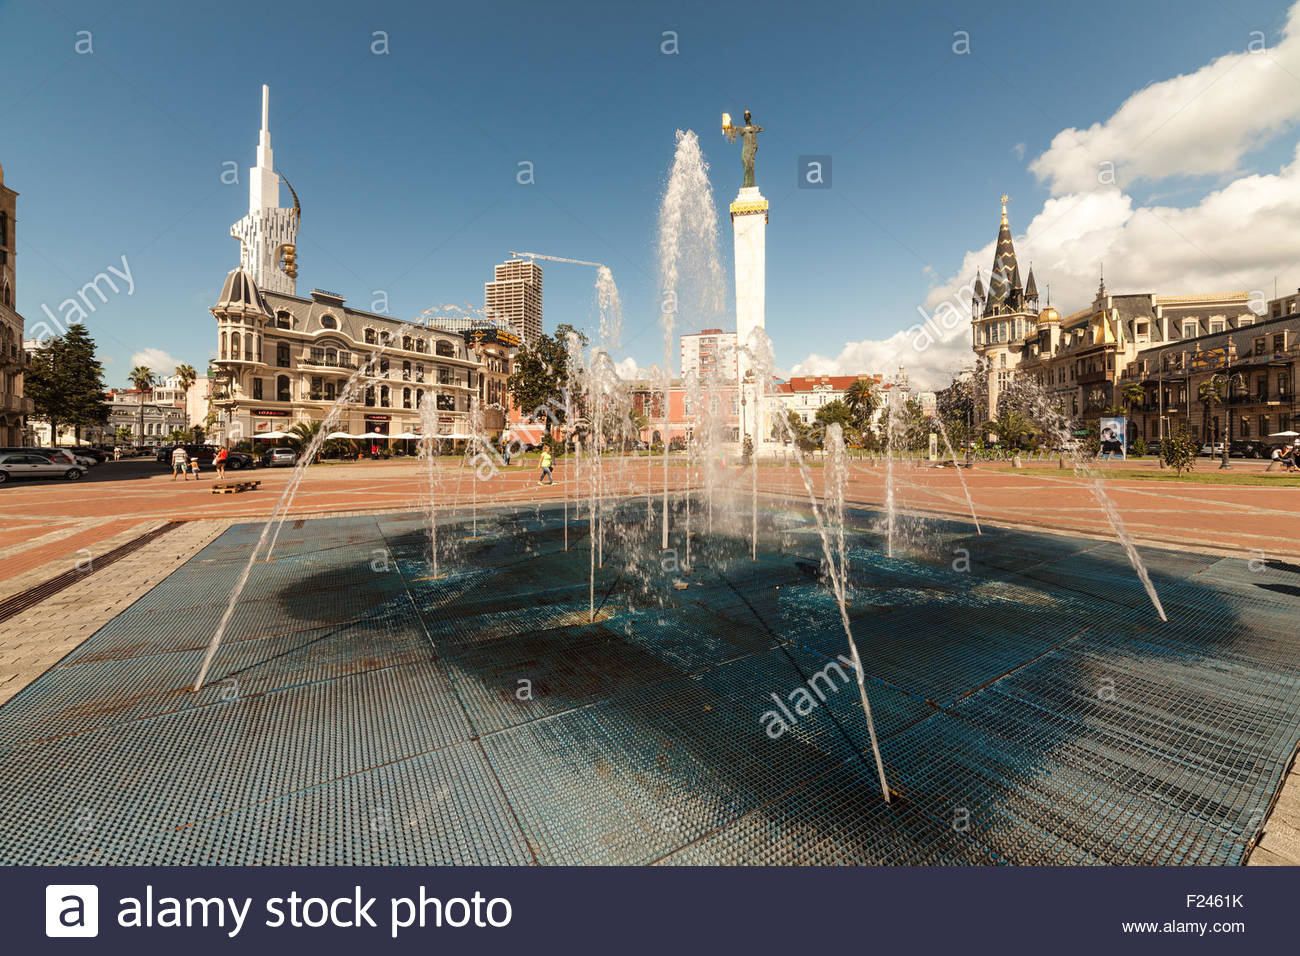 Evropas Moedani Batumi, Moedani Stock Photos & Moedani Stock Images - Alamy